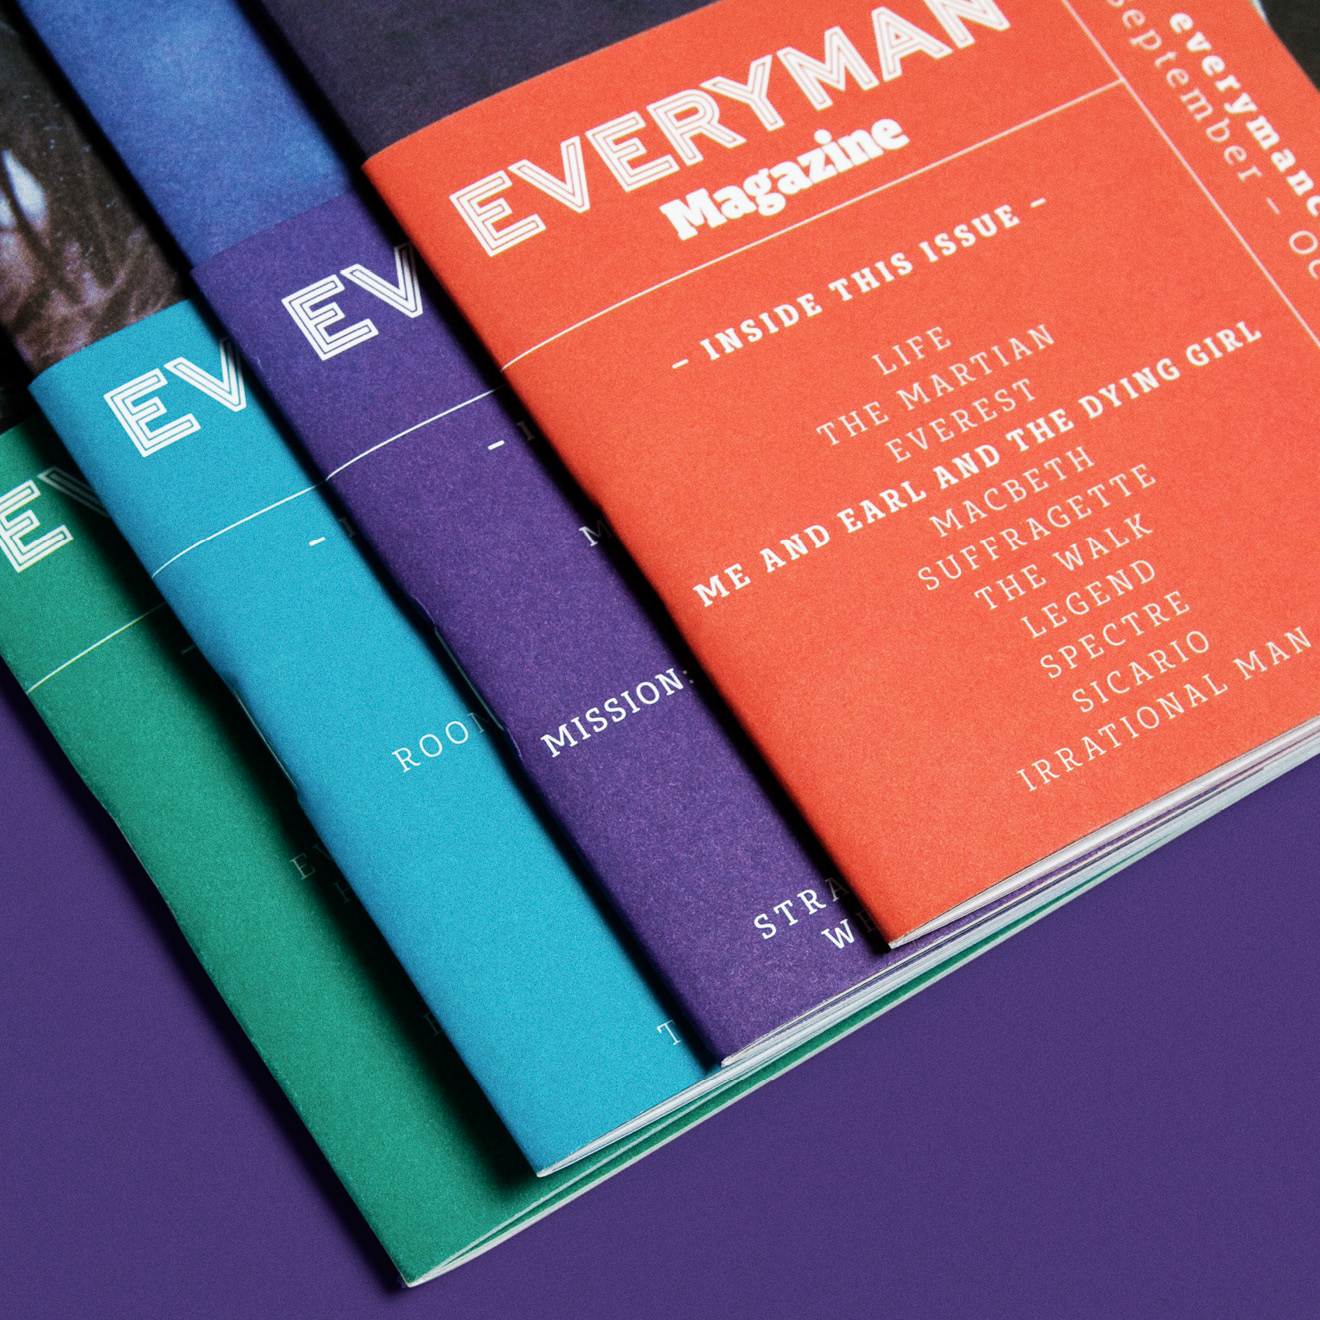 Everyman Cinemas Everyman Magazine - cover overlays - by Human After All